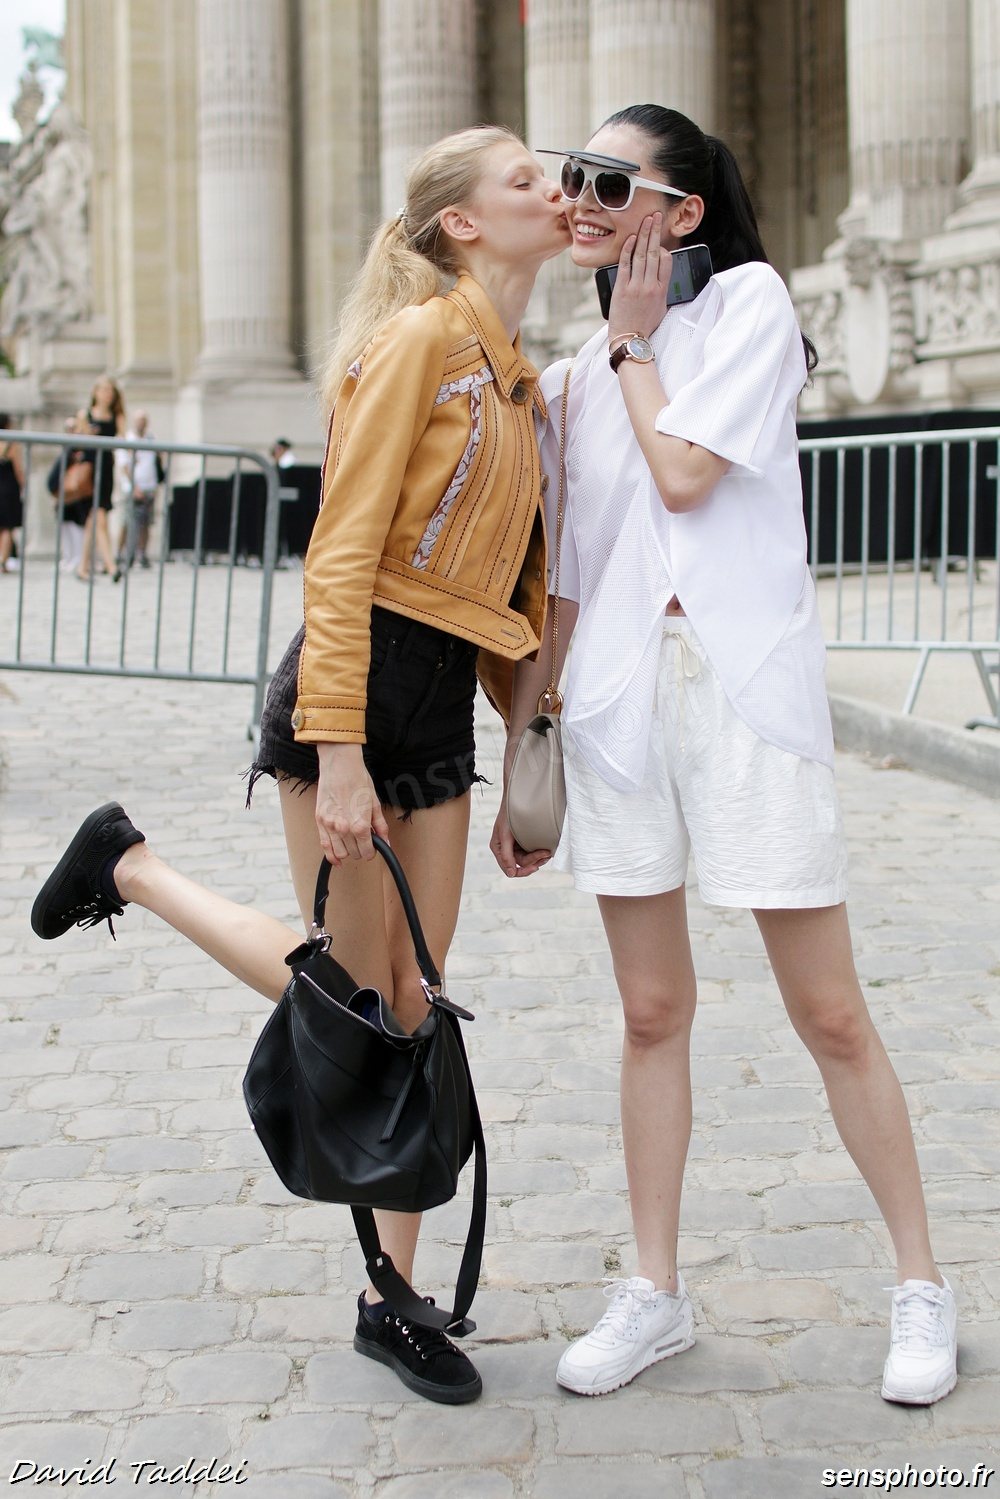 a model and Ming Xi, Paris Fashion Week Chanel